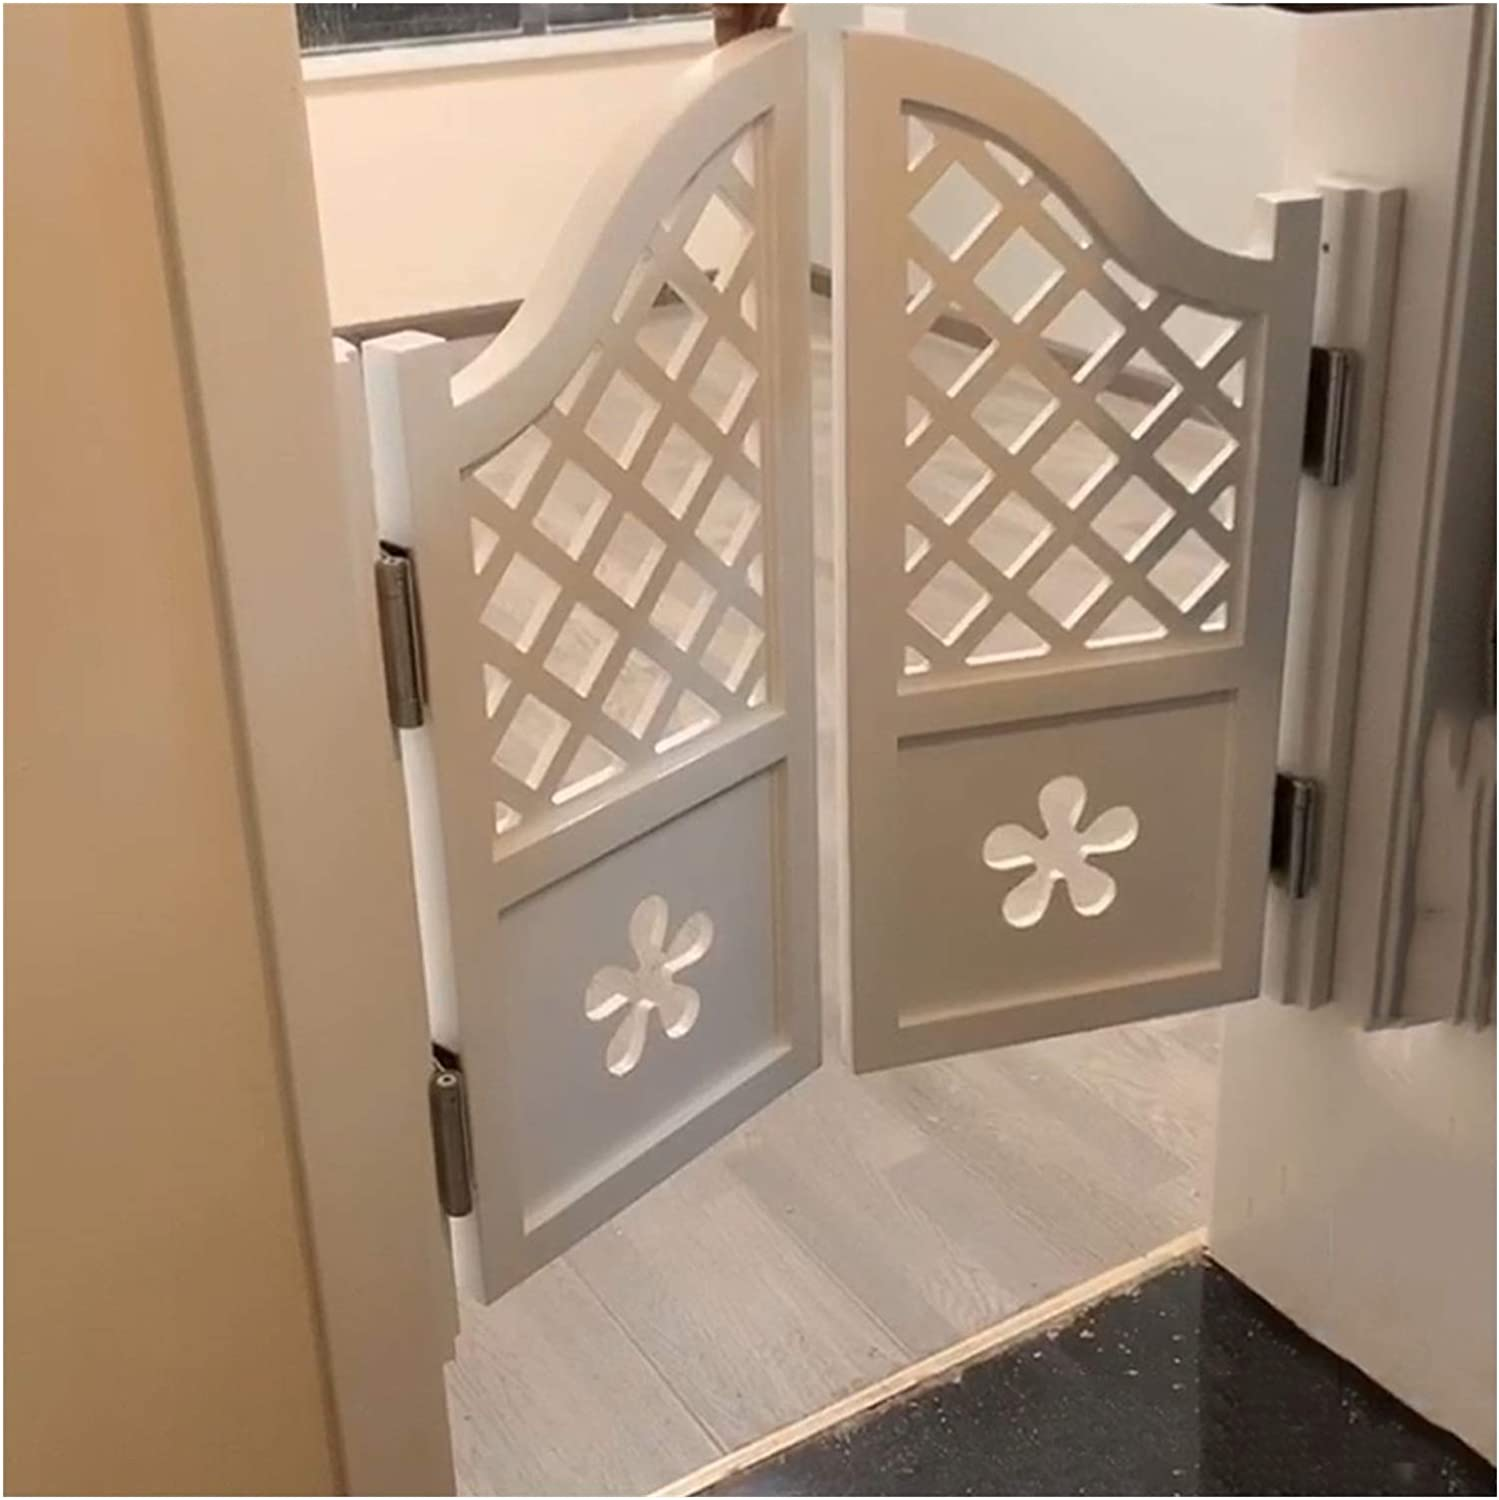 Cafe Swinging Doors Solid Wood Entrance High quality new Bar Max 70% OFF Kitchen Fence